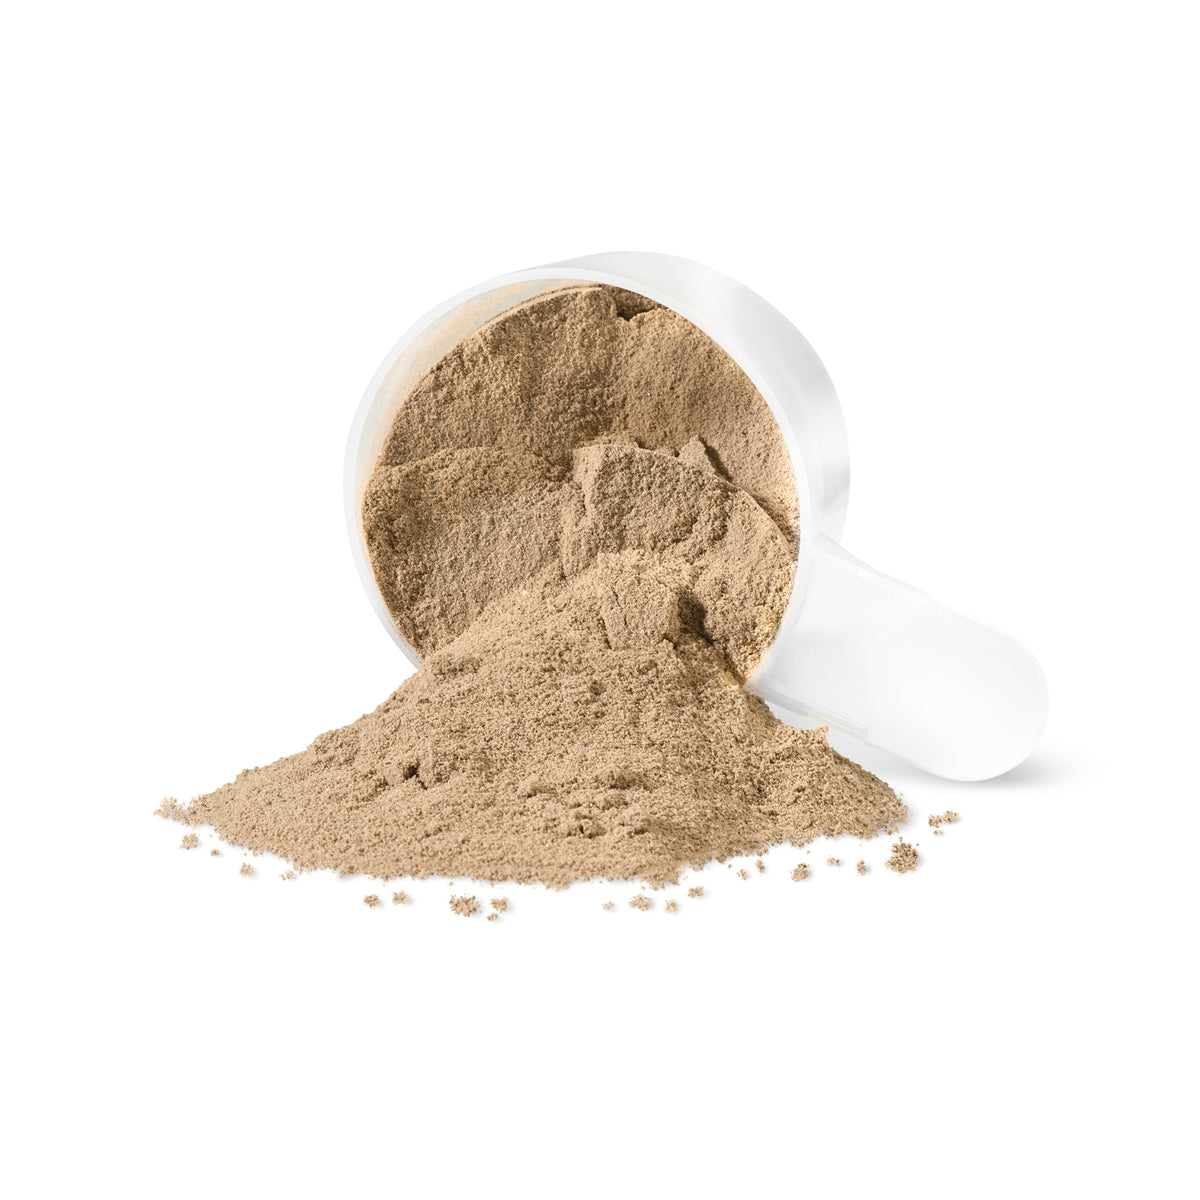 PV3423 Grass Fed Whey Chocolate Powder